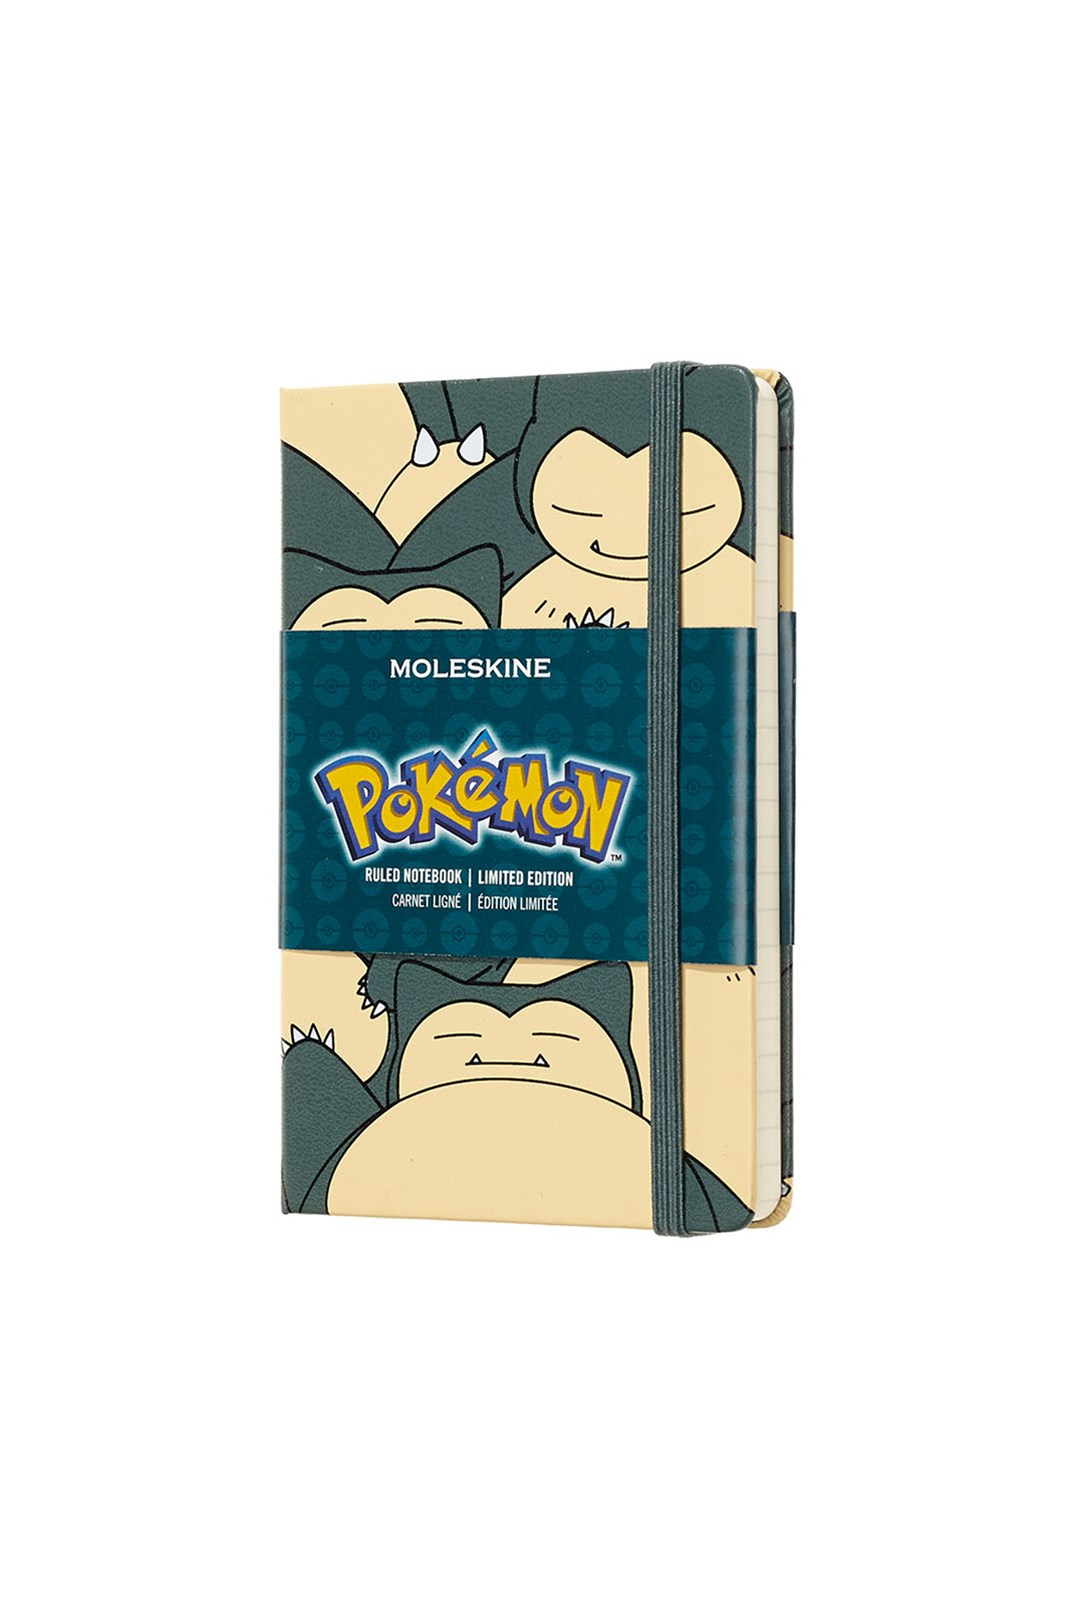 Moleskine - Limited Edition - Pokemon Notebook - Ruled - Pocket - Snorlax